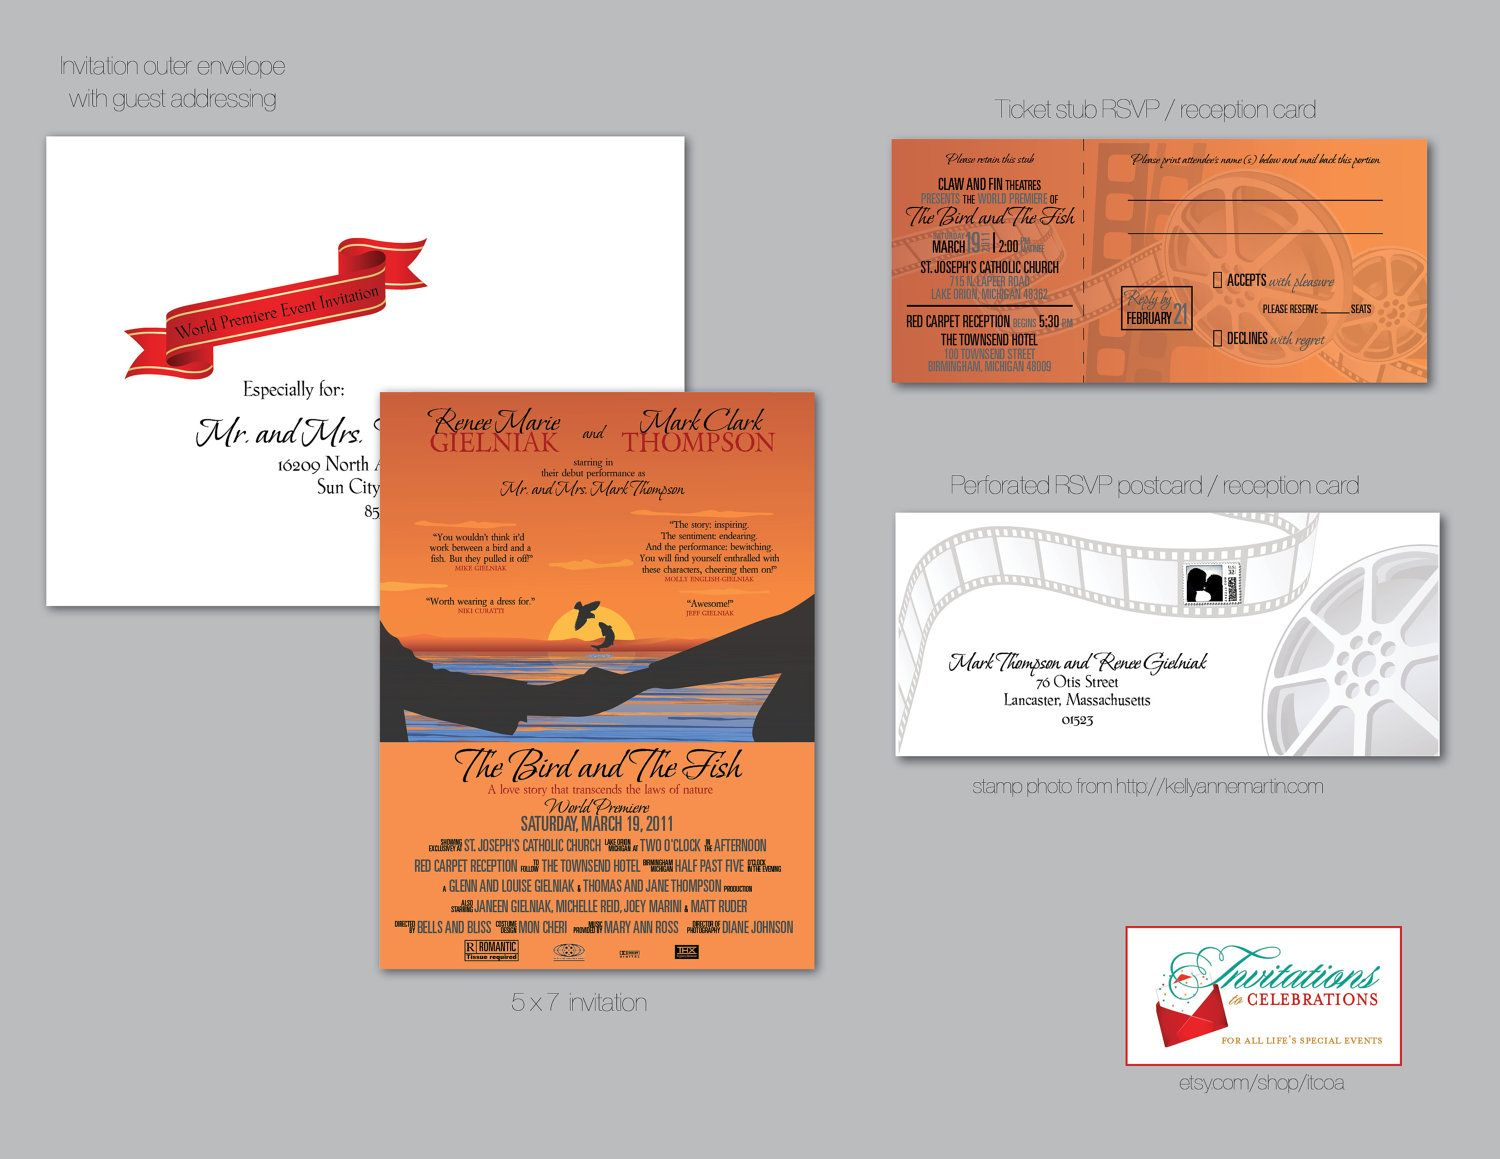 Movie theater poster wedding invitation suite with tear off ticket ...